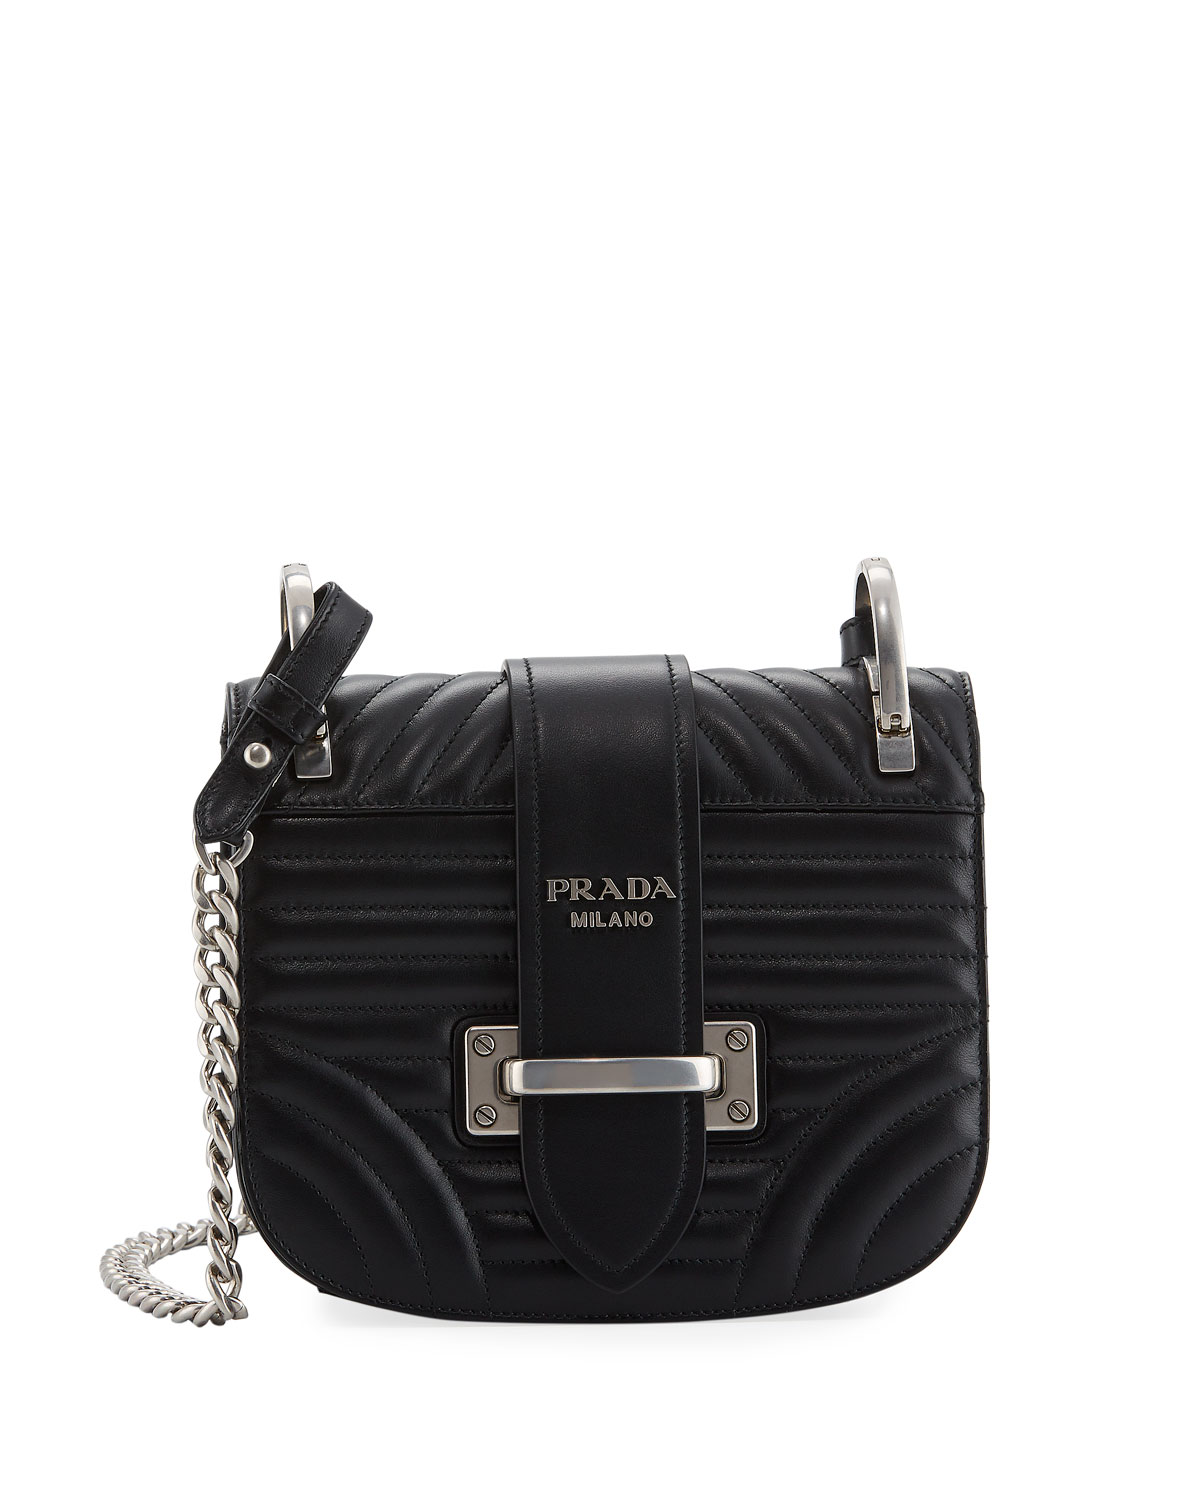 16cd089b413 Prada Impunture Cahier Quilted Small Shoulder Bag